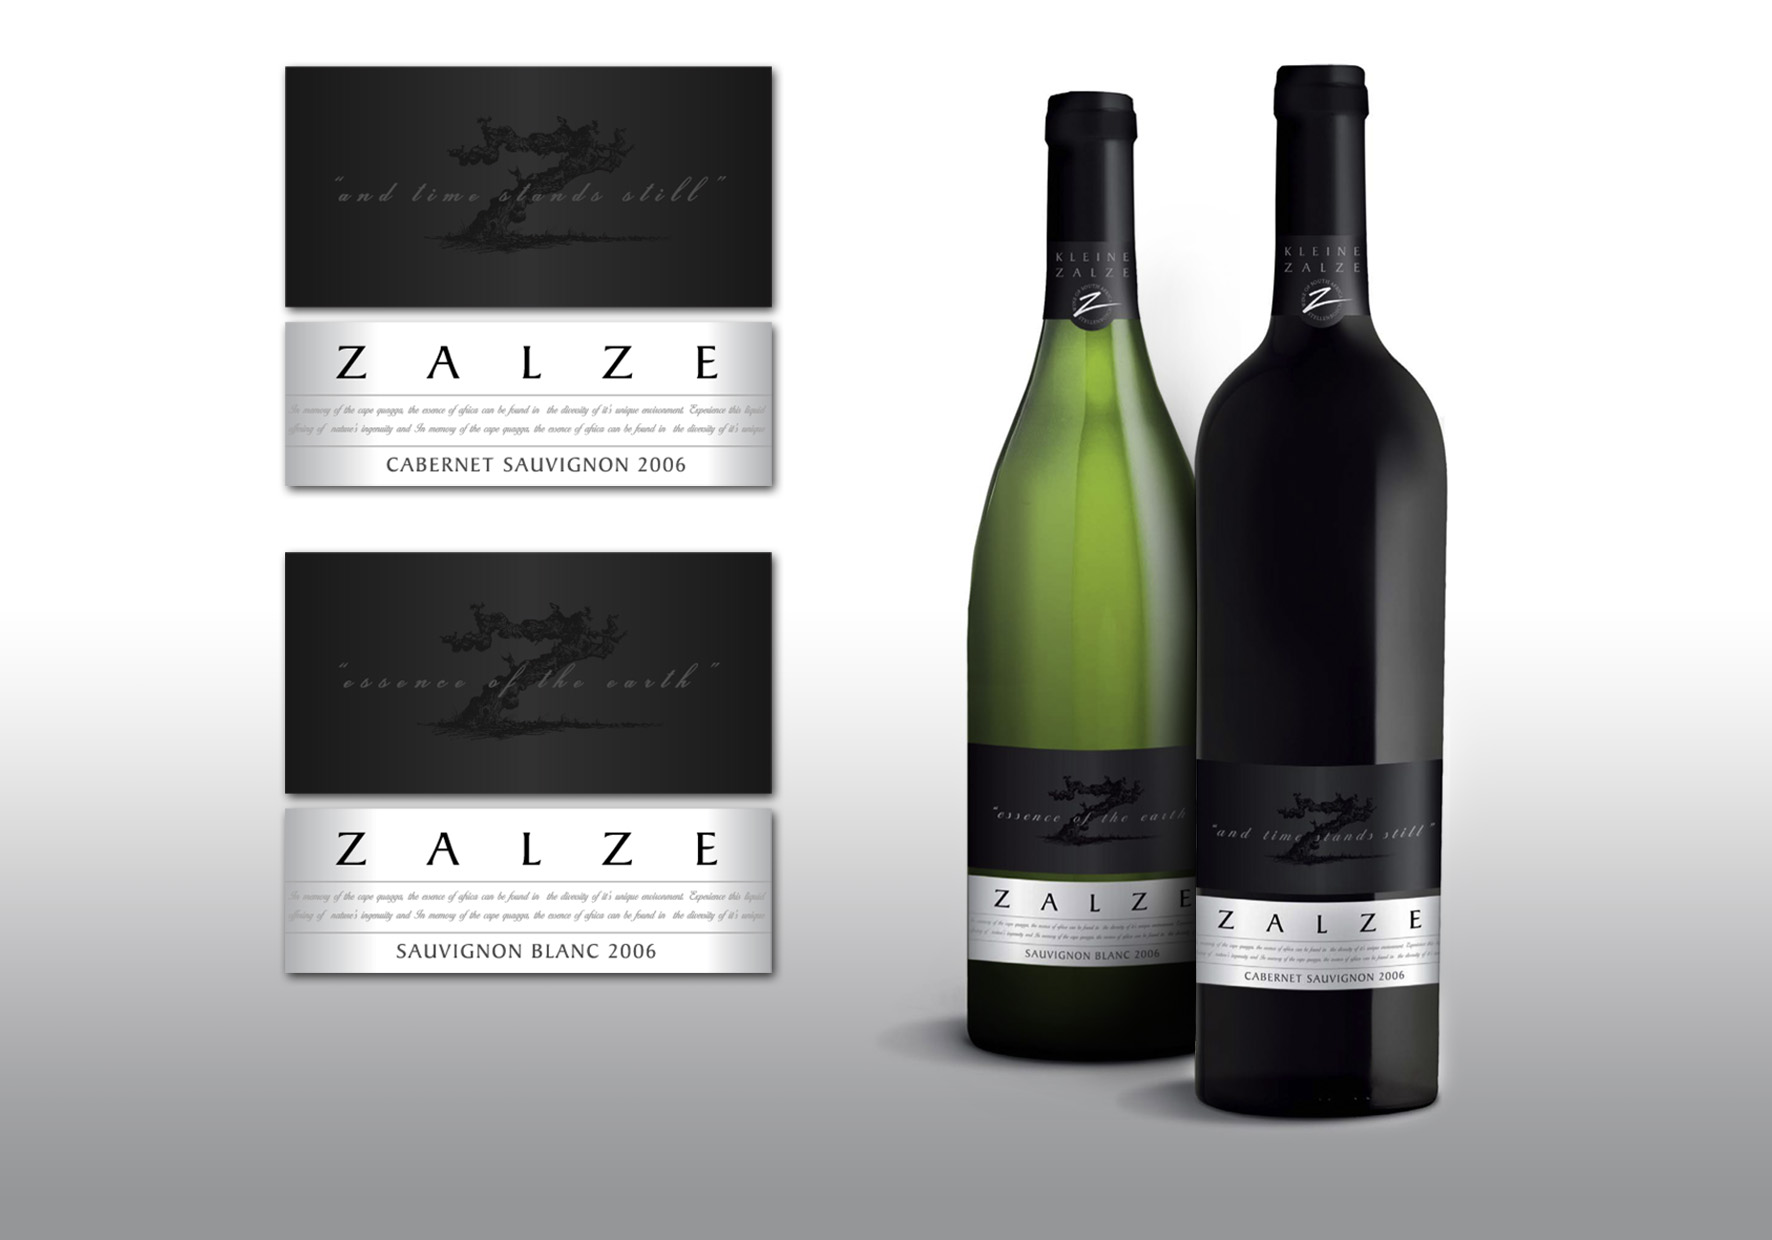 Zalze Lable Design